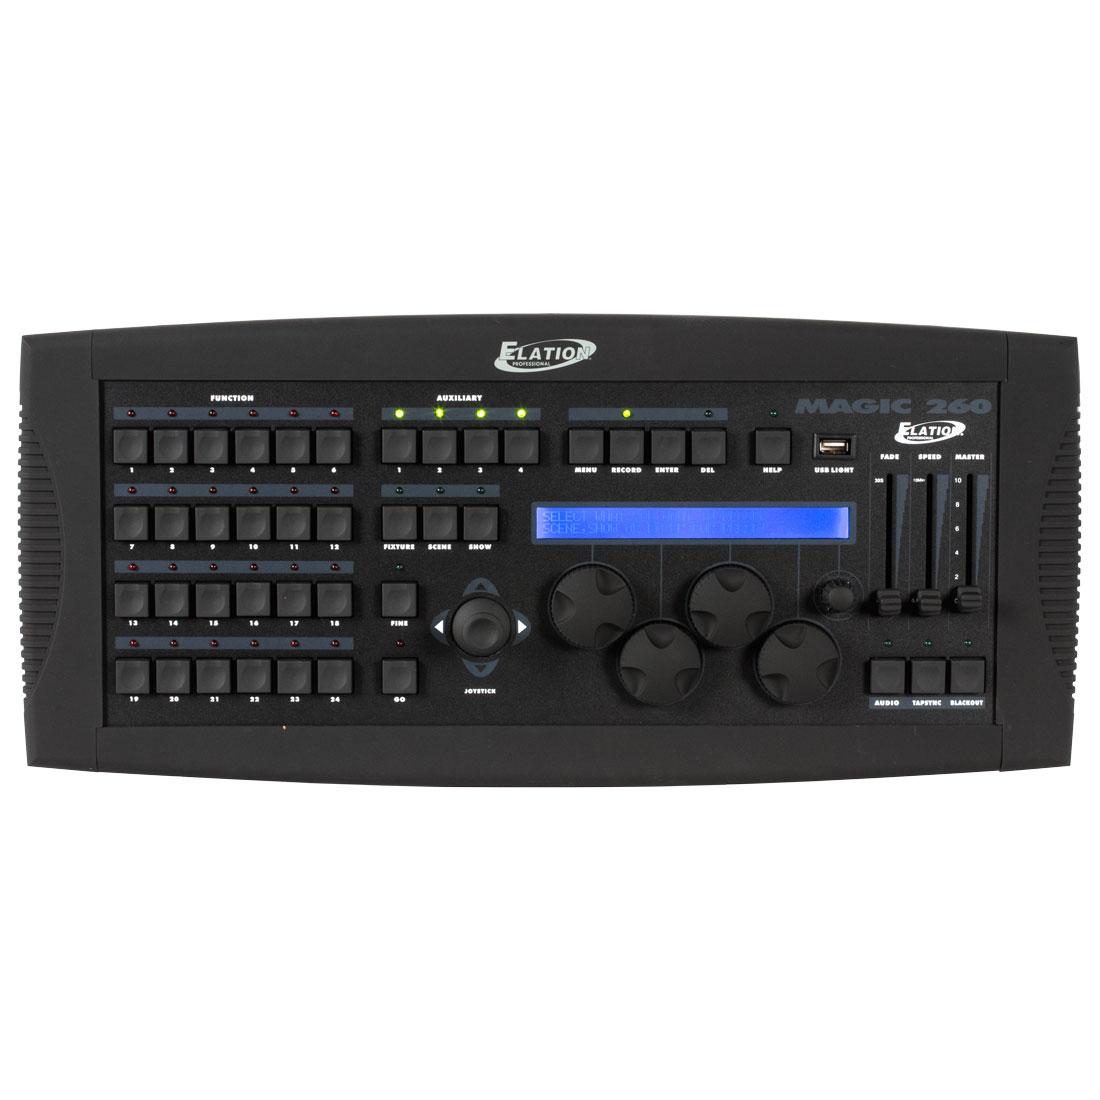 Magic 260 DMX controller